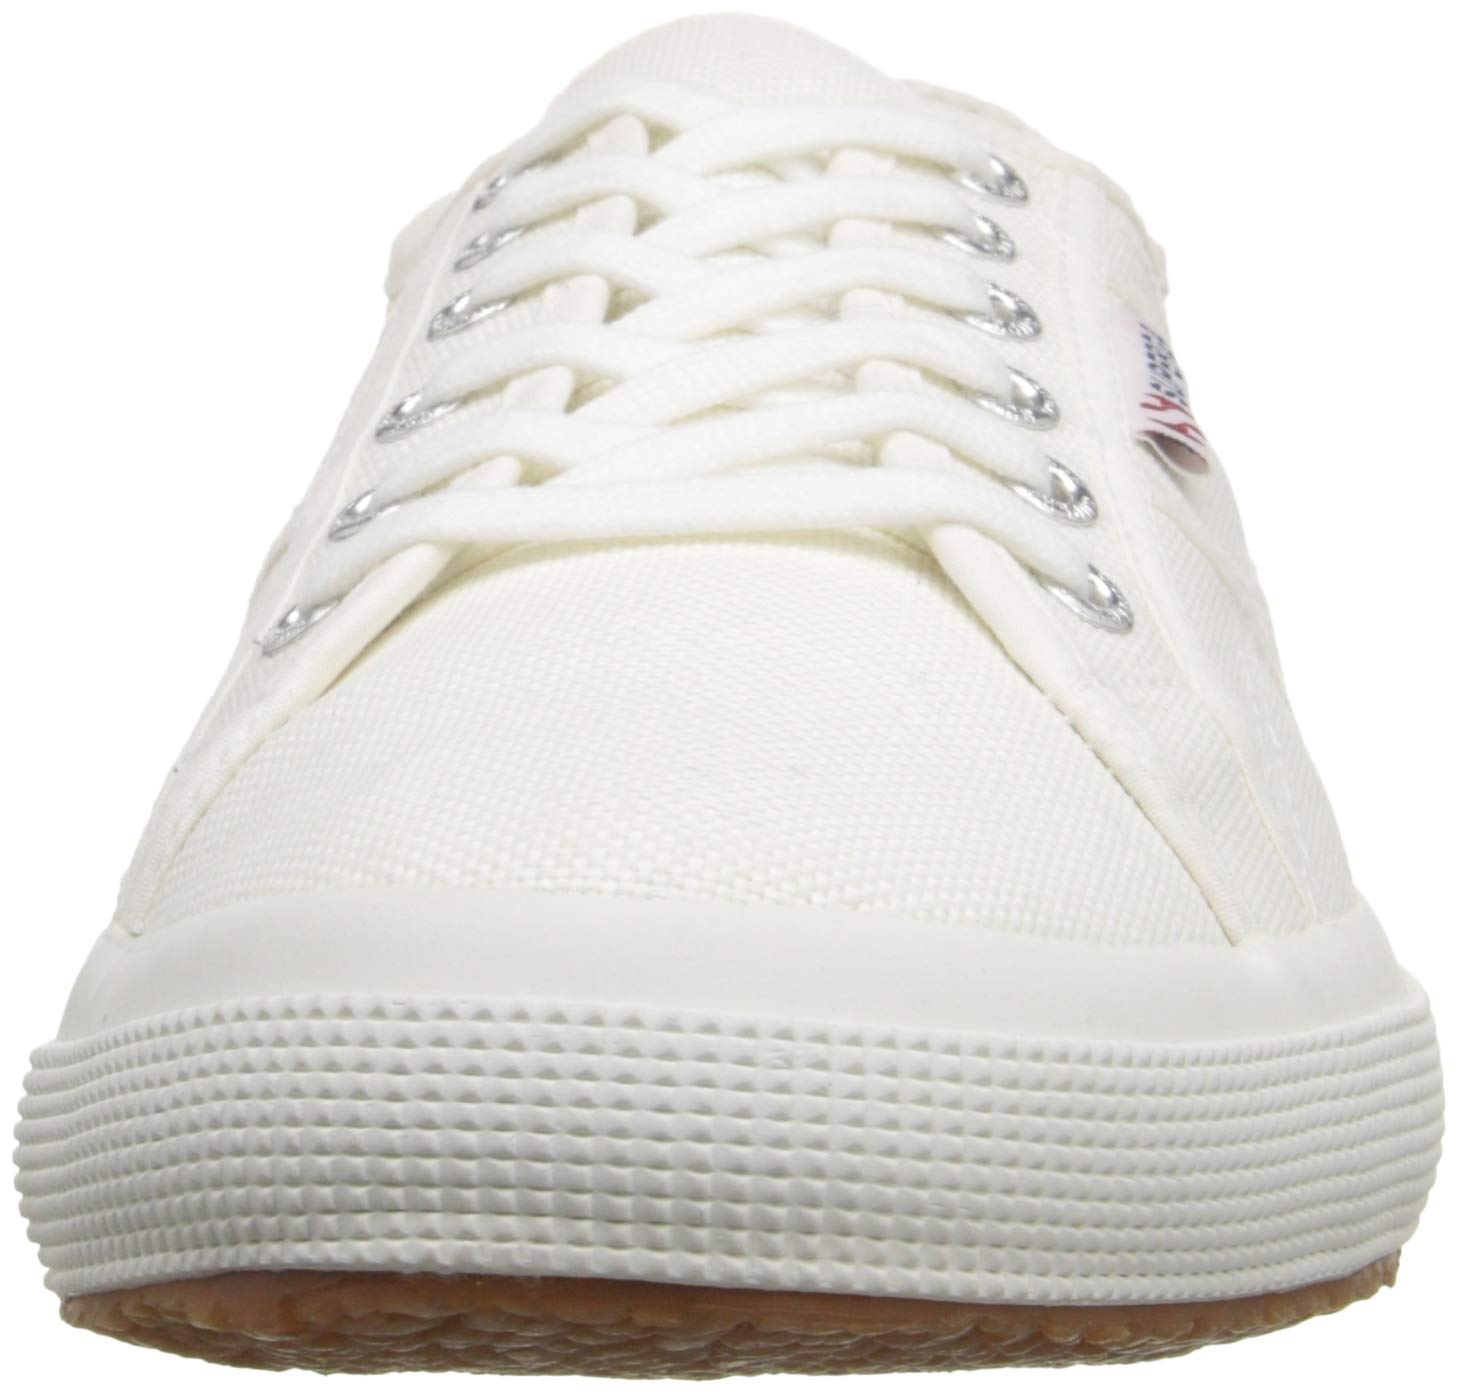 Superga 2750 Cotu Classic, Unisex Adults' Low-Top Sneakers, White, 7.5 UK (41.5 EU) by Superga (Image #4)